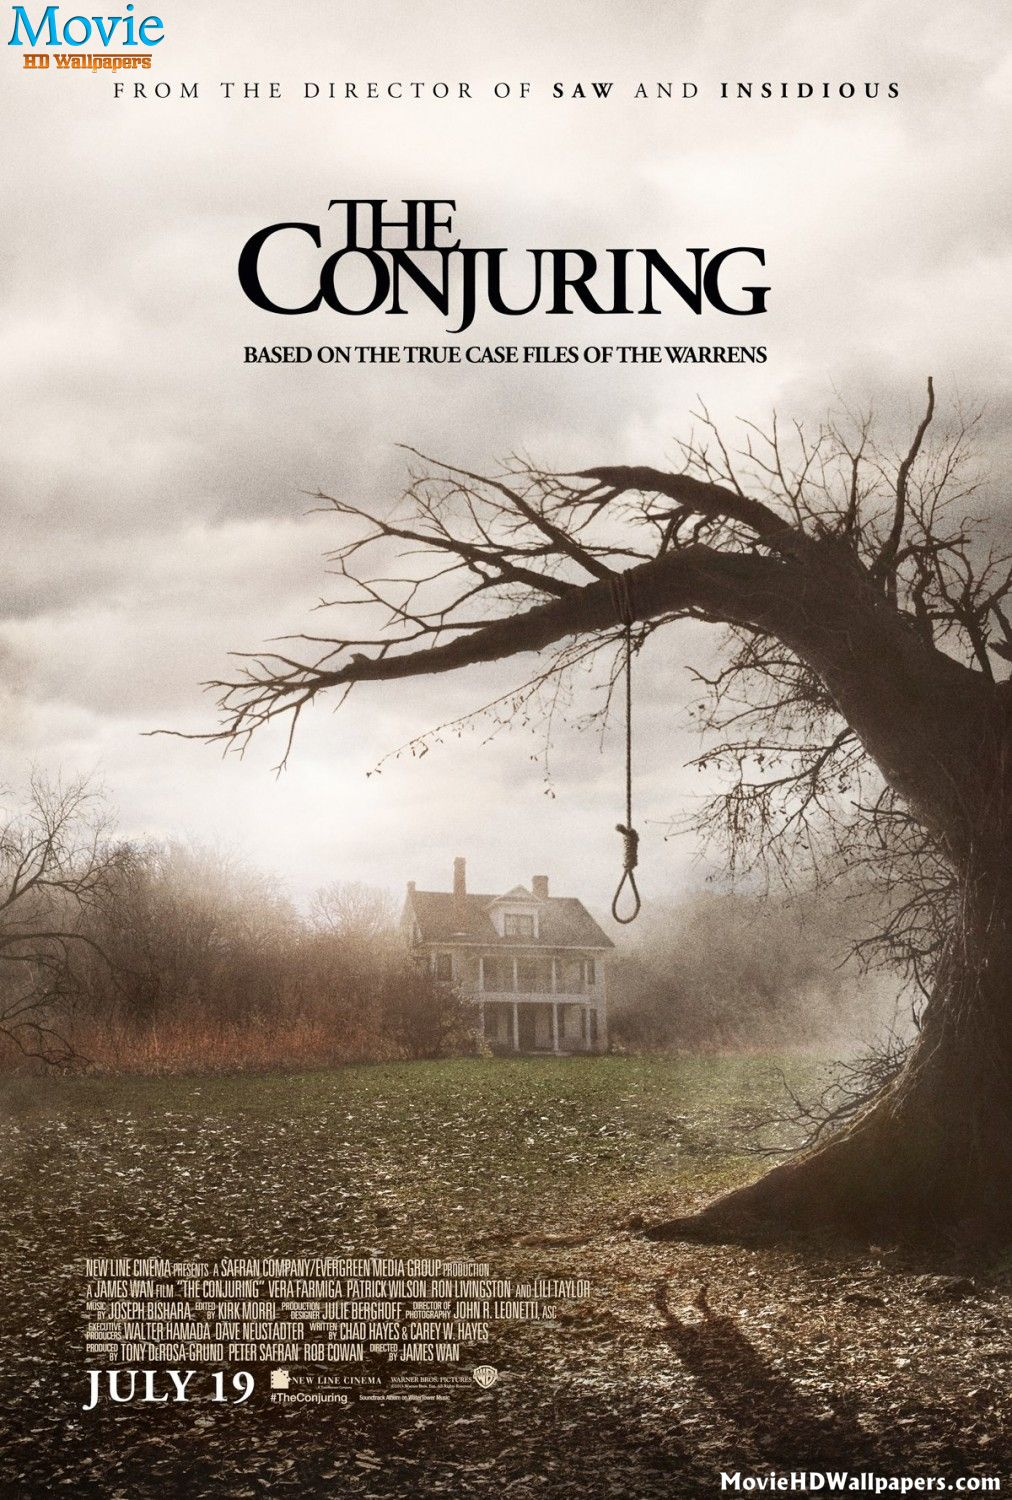 The Conjuring (2013) #1